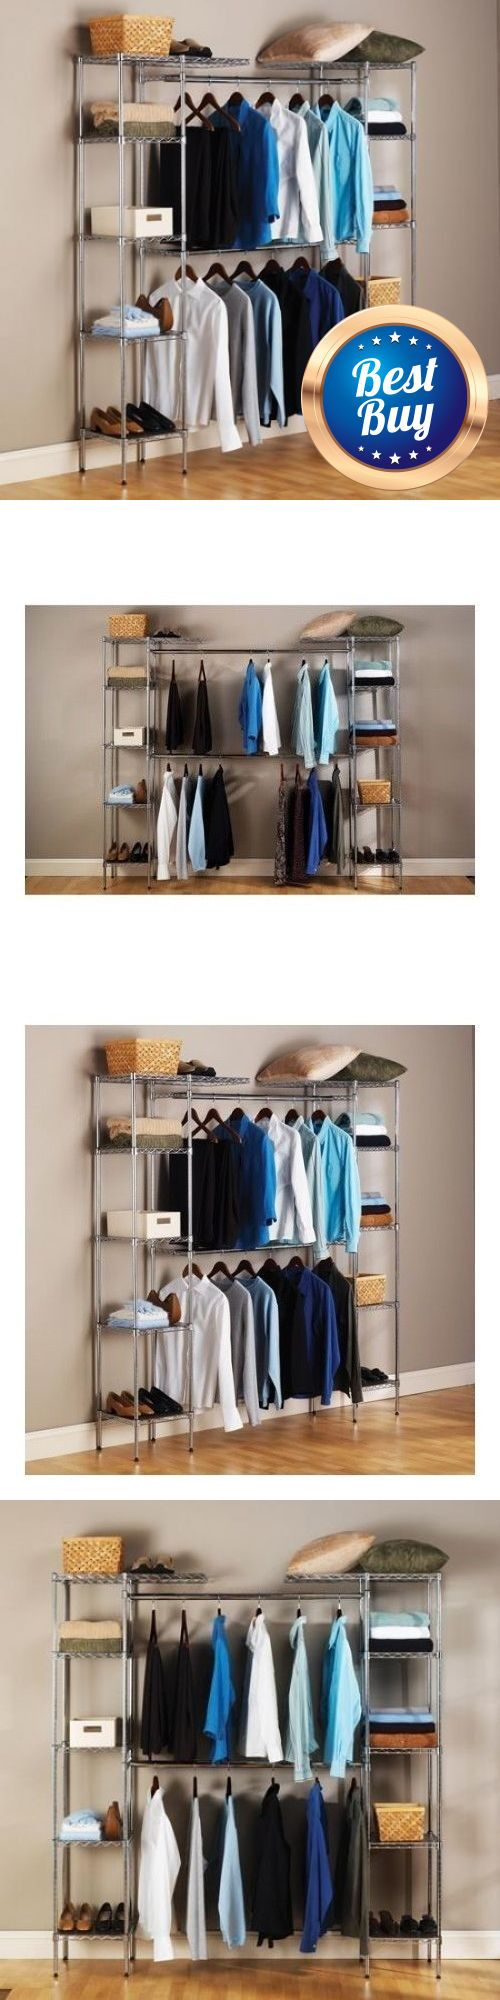 Closet Organizers 43503: Closet Organizer Storage Cabinet Rack Portable Clothes Wardrobe Hanger Shelves -> BUY IT NOW ONLY: $139.99 on eBay!